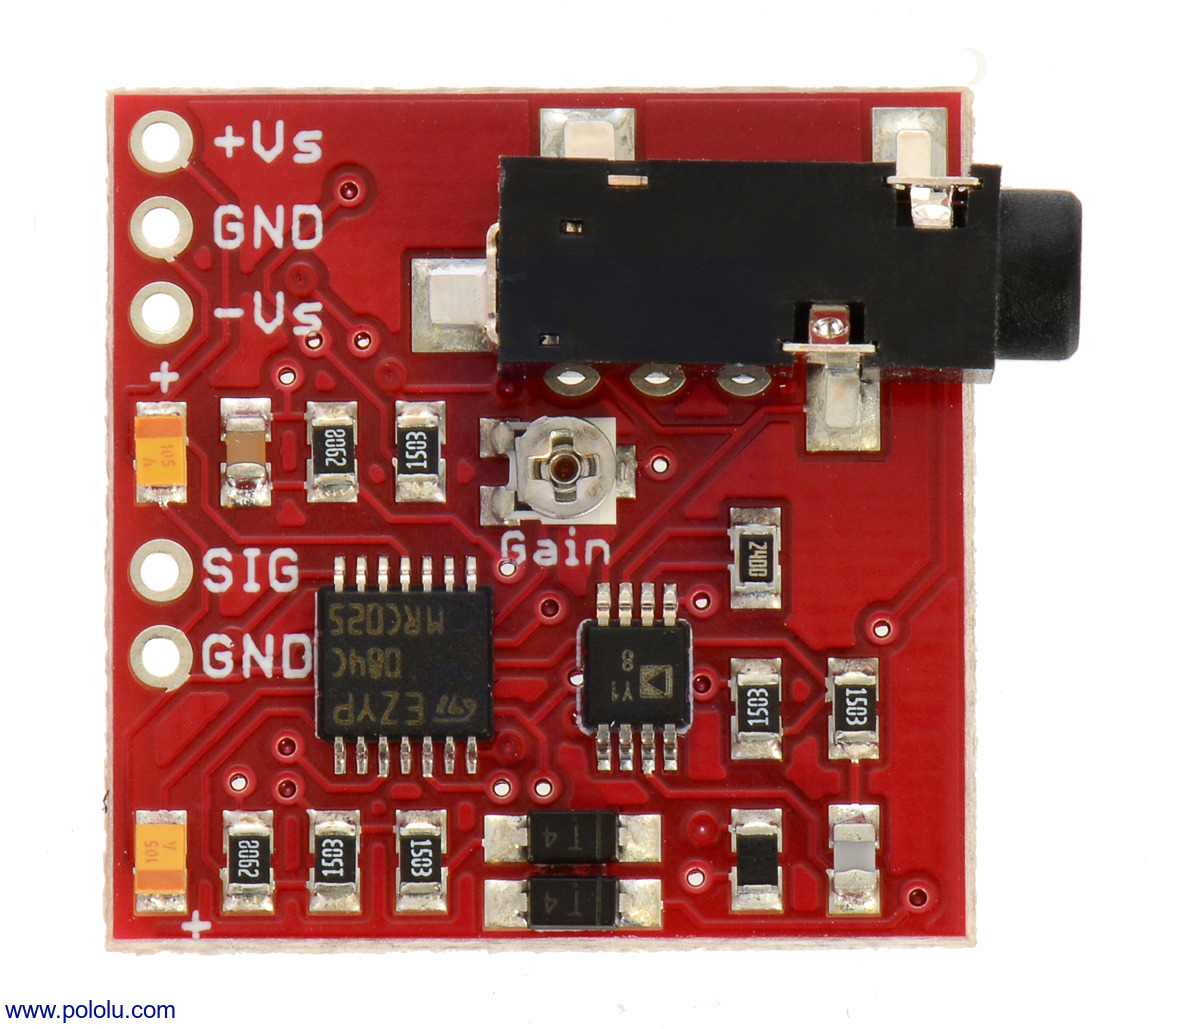 Pololu Advancer Technologies Muscle Sensor V3 Lowcost Shipment Shock Using A 6pin Sot23 Microcontroller An Error Occurred